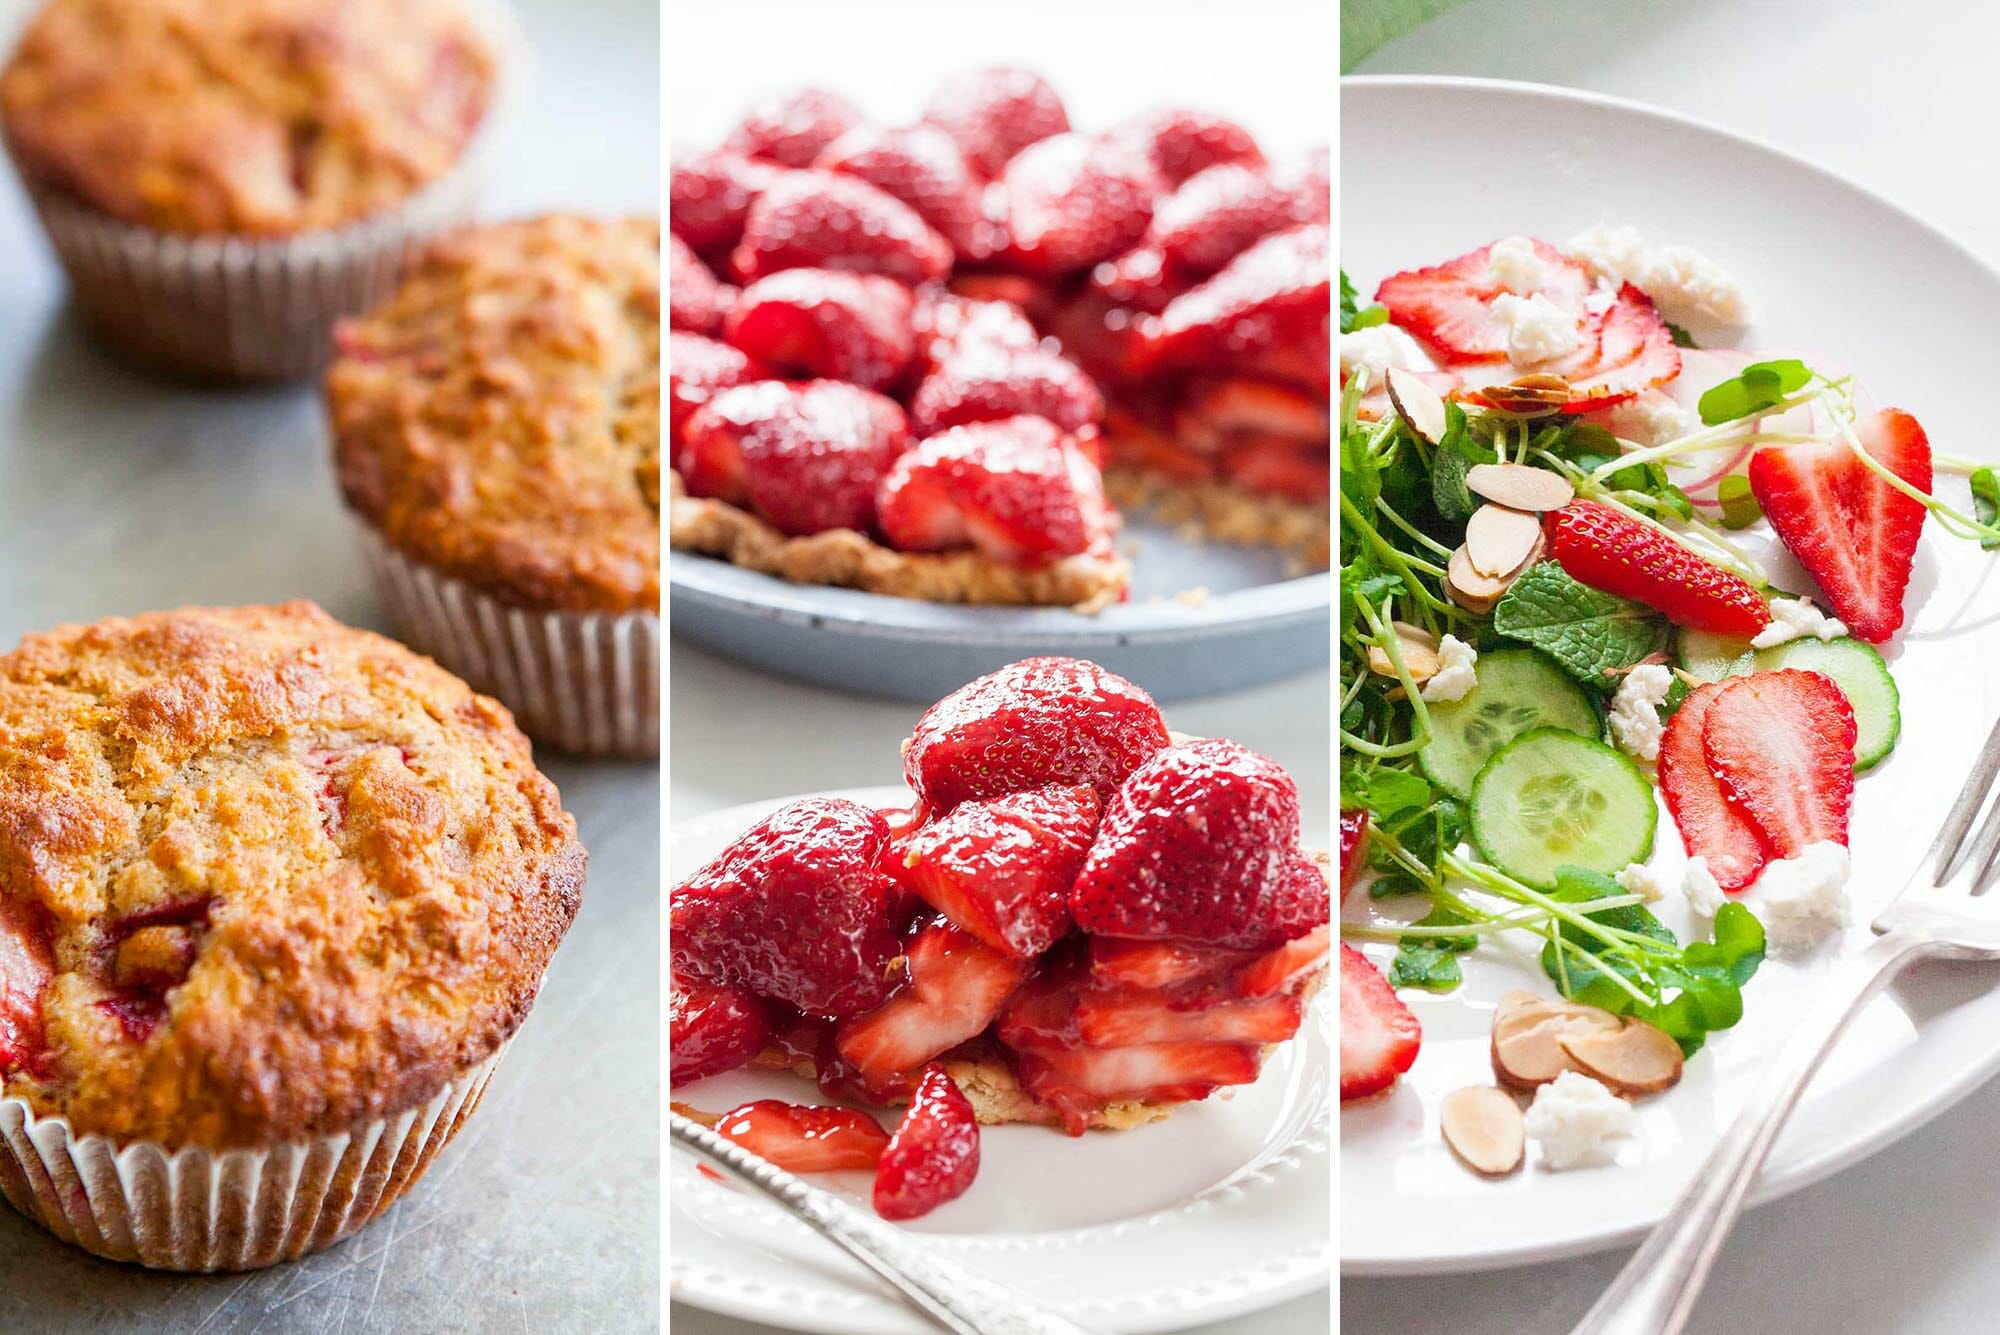 Three strawberry recipe photos next to each other. The left is three golden strawberry muffins. The middle is a slice of fresh strawberry pie on a plate with the rest of the pie behind it. On the right is a strawberry salad with sliced cucumbers, almonds, cheese and greens.